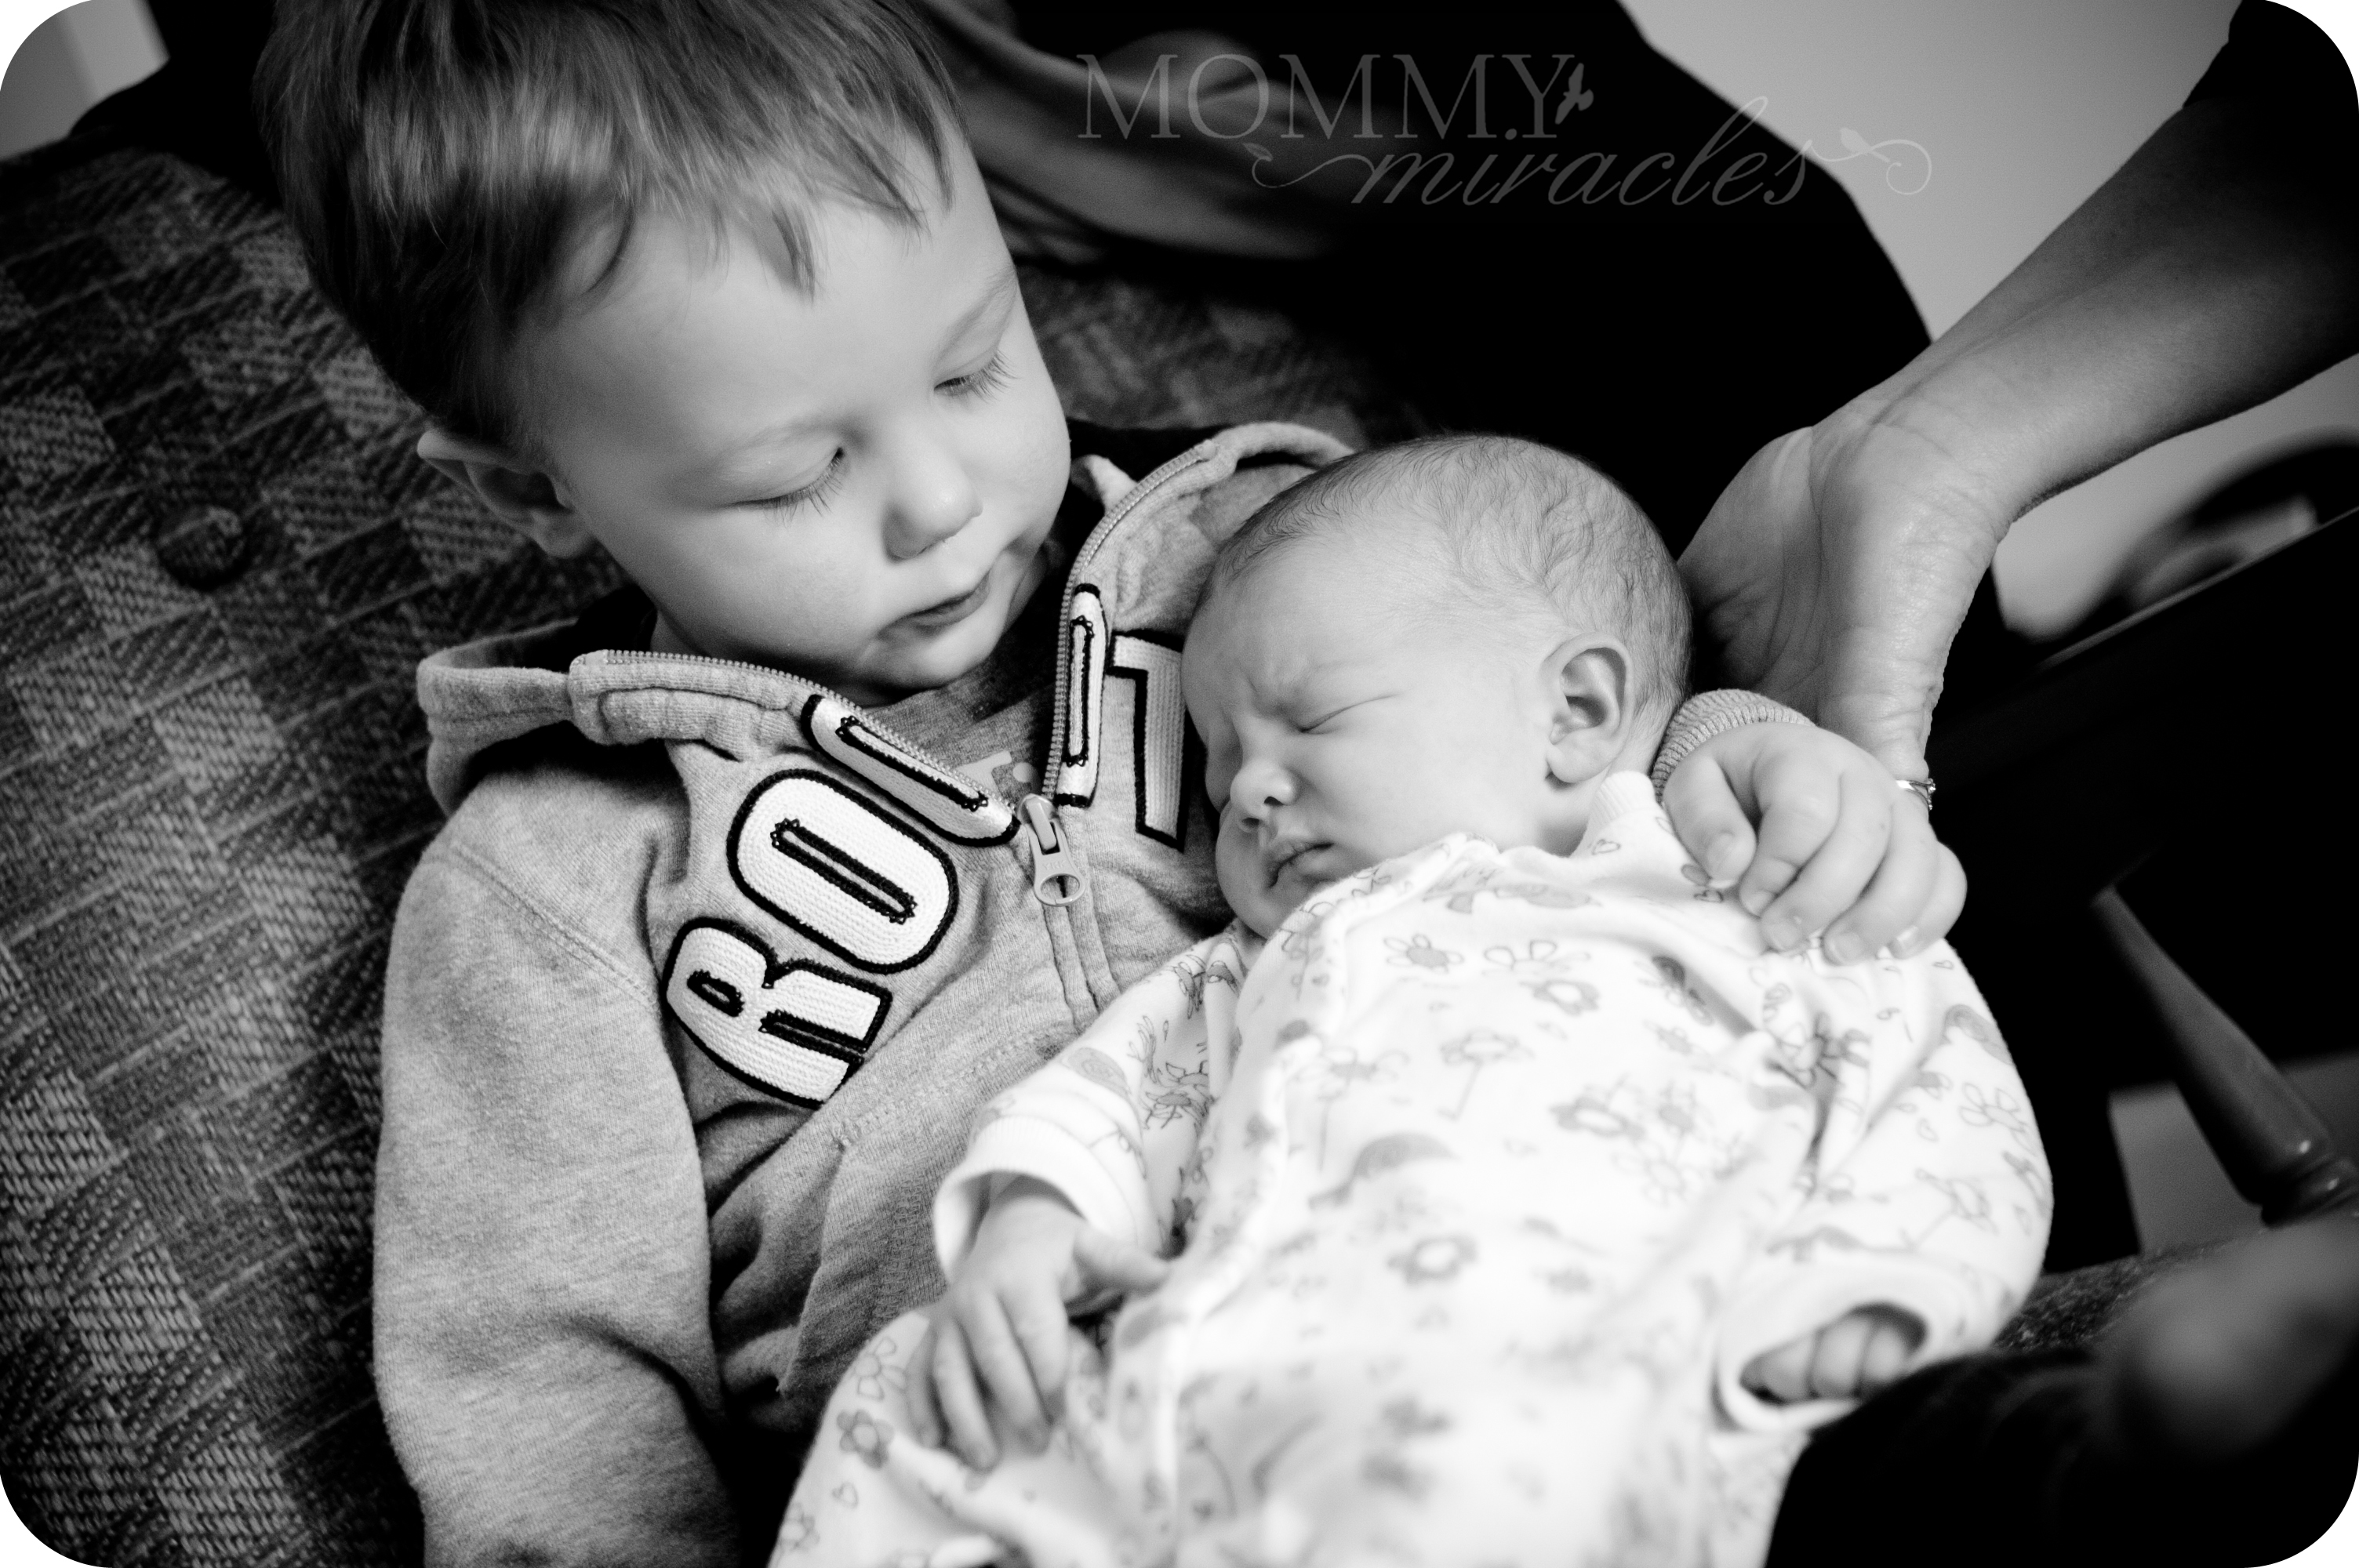 mommy-miracles.com_wp-content_uploads_2012_03_Cameron-and-Baby-Ella